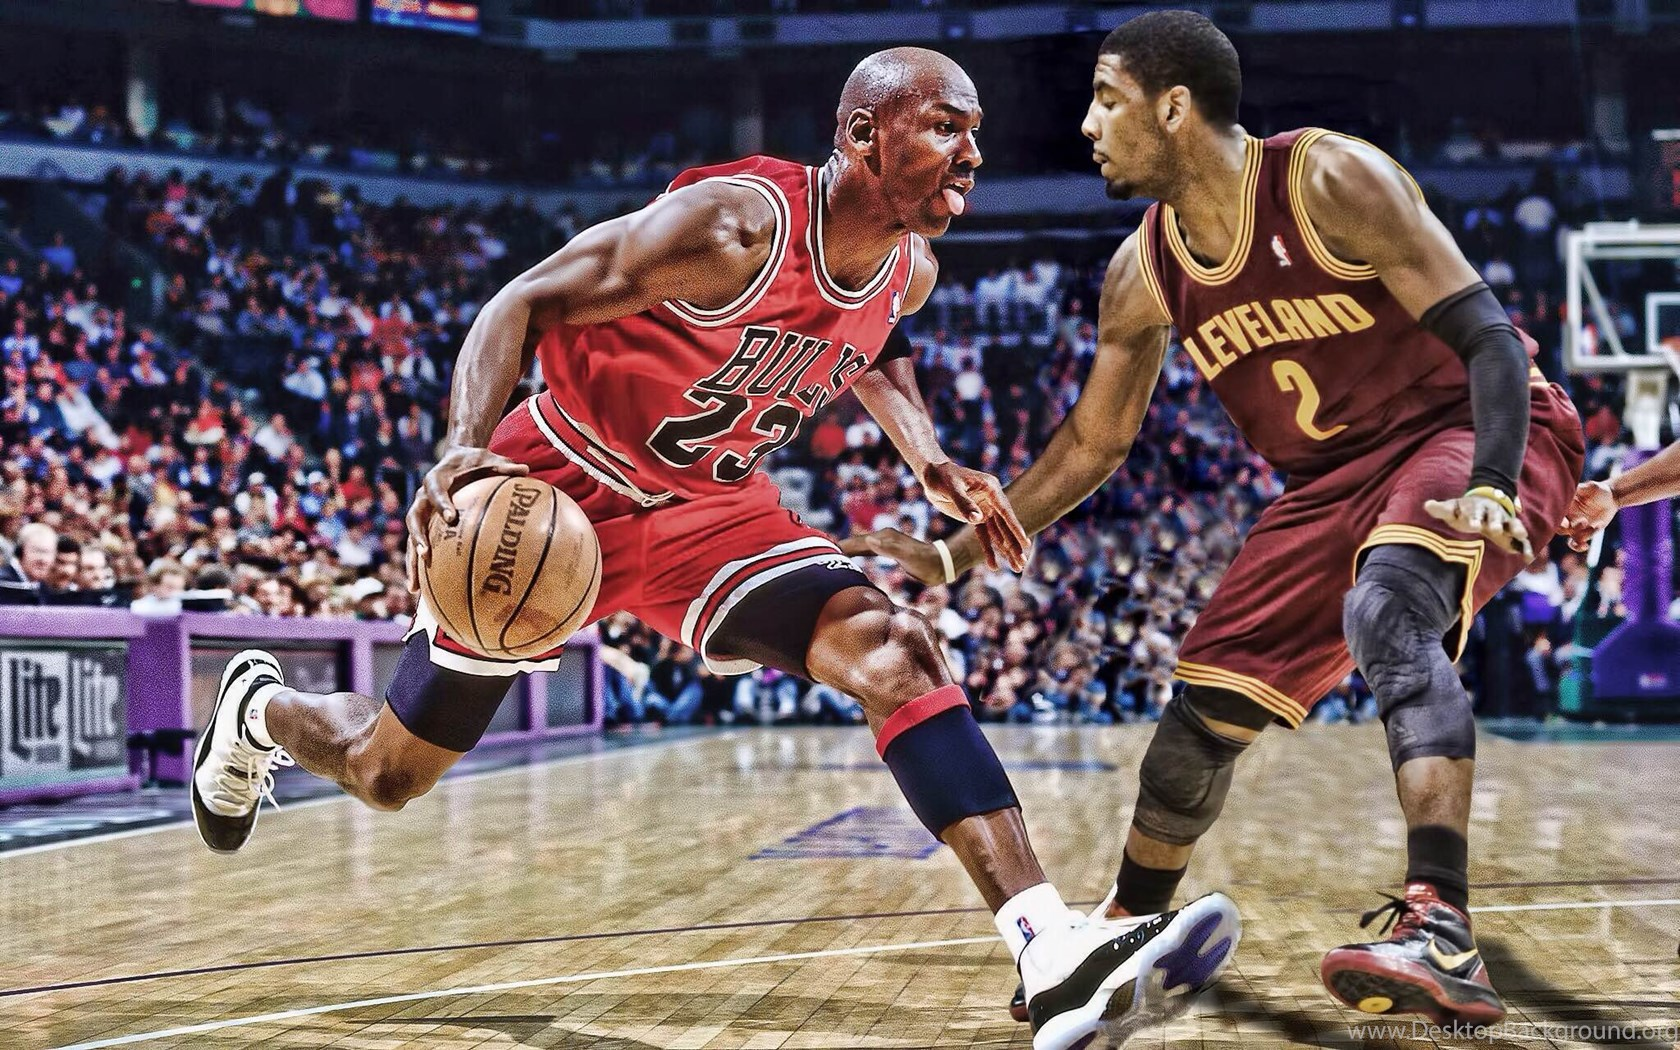 Kyrie Irving Wallpapers Hd Iphone Picture Gallery Desktop ...Kyrie Irving Wallpaper Ipad